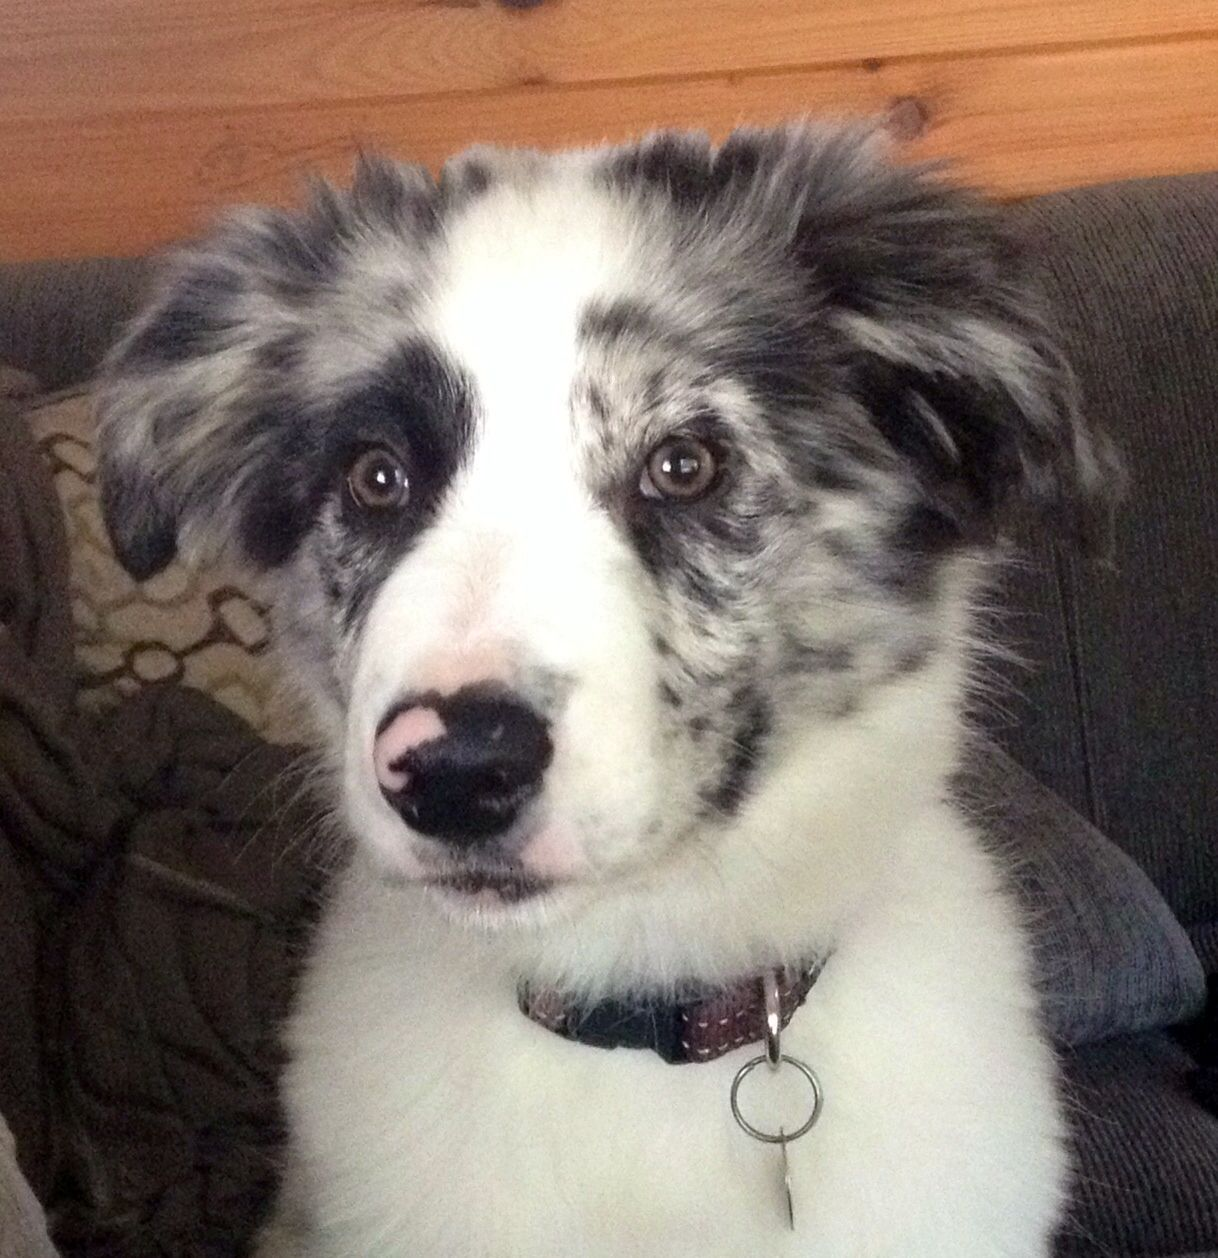 Blue Merle Border Collie Puppy With Pink Spot Nose Border Collie